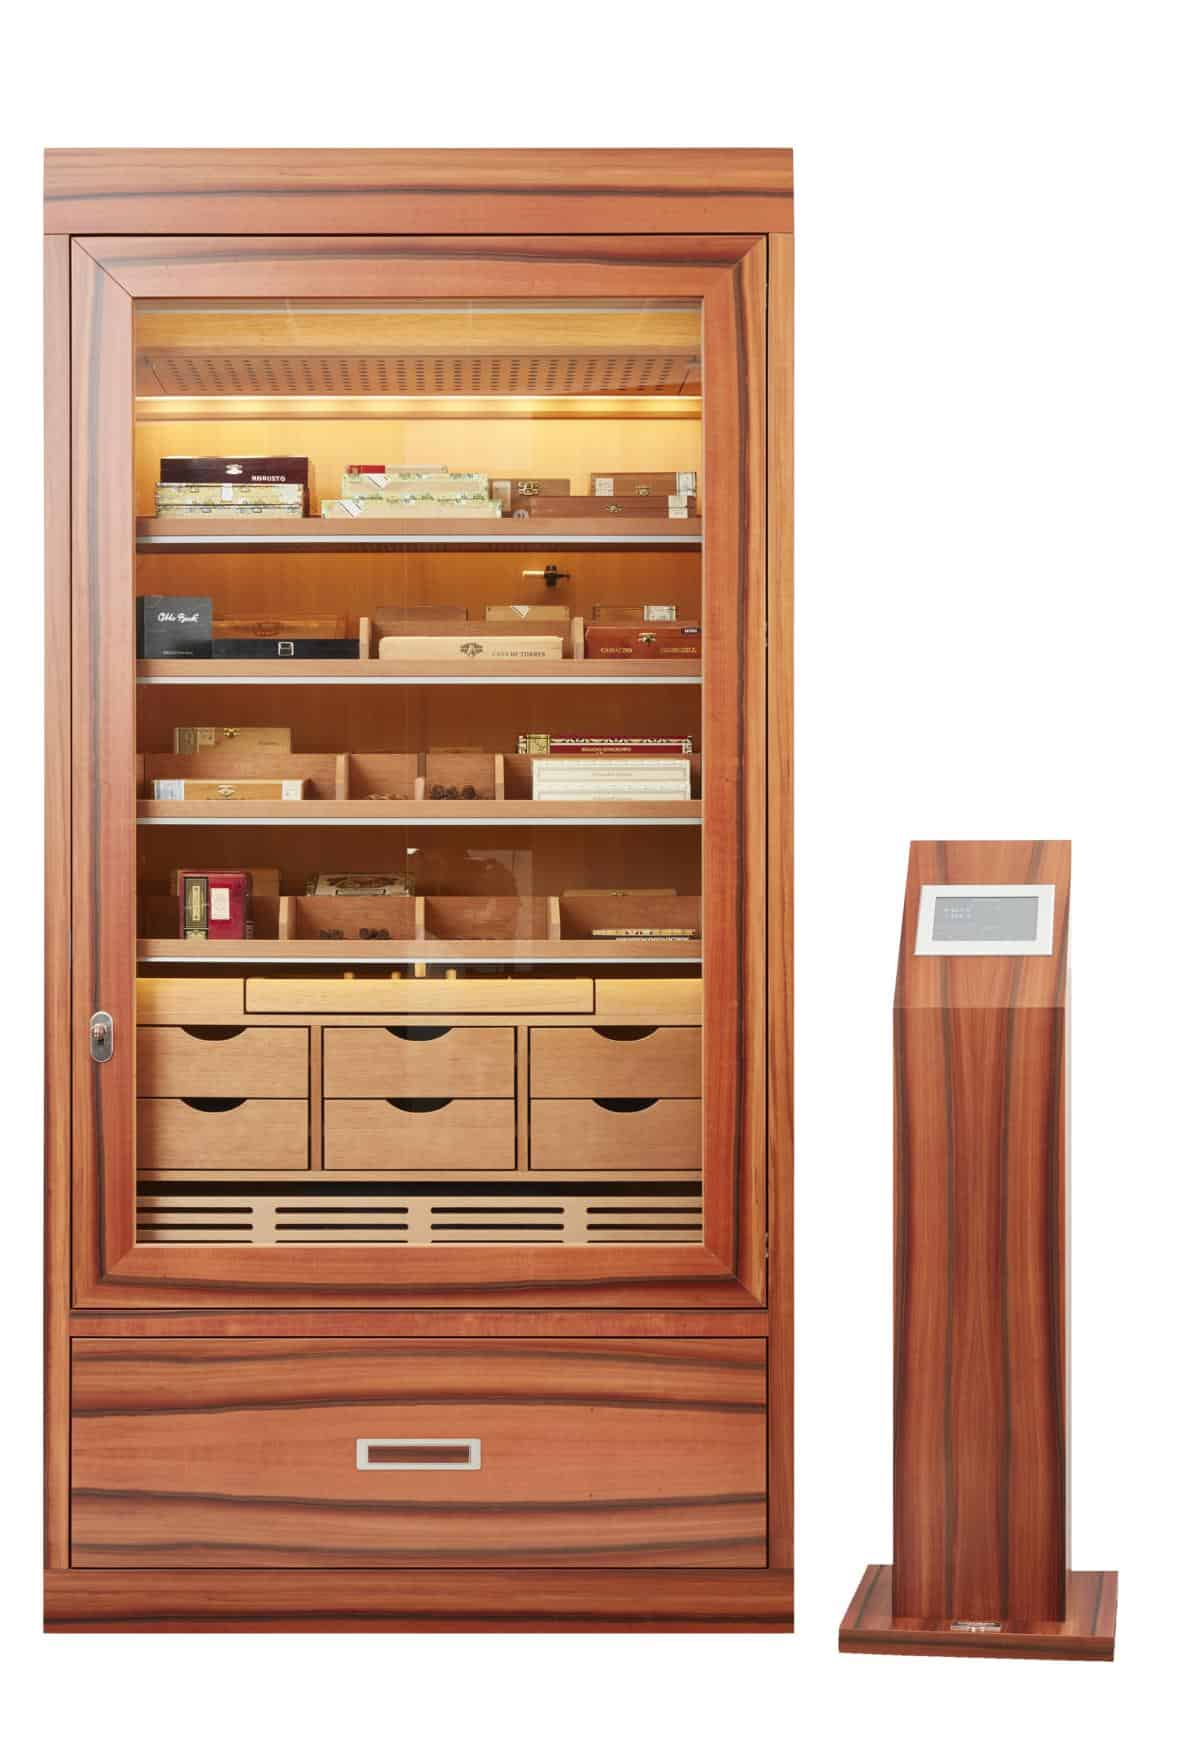 Cabinet Humidor Number One Tineo » GERBER Humidors